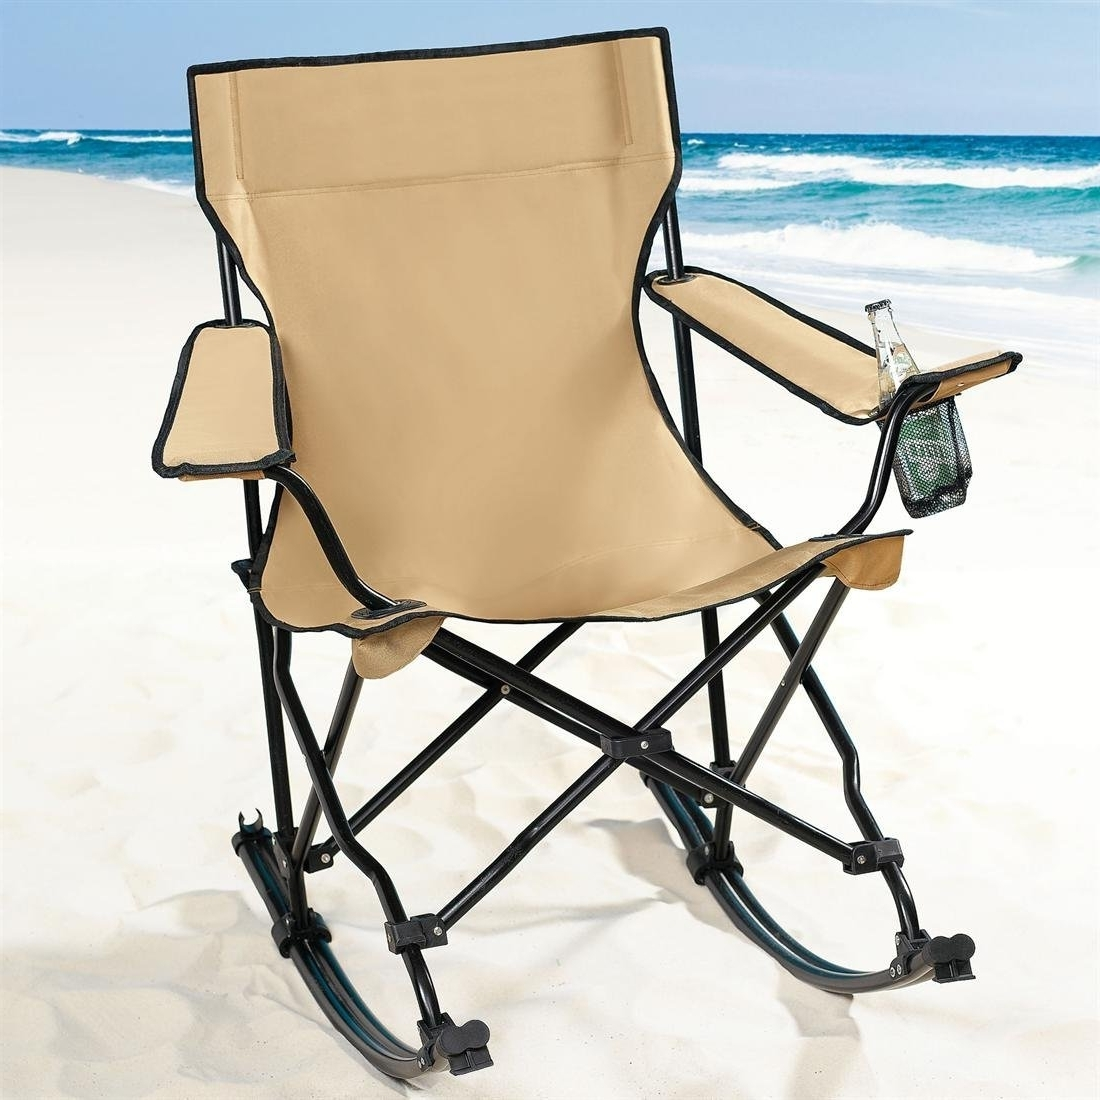 Folding Rocking Chairs Pertaining To Preferred Folding Camping Rocking Chair — All Modern Rocking Chairs : Extra (View 7 of 15)